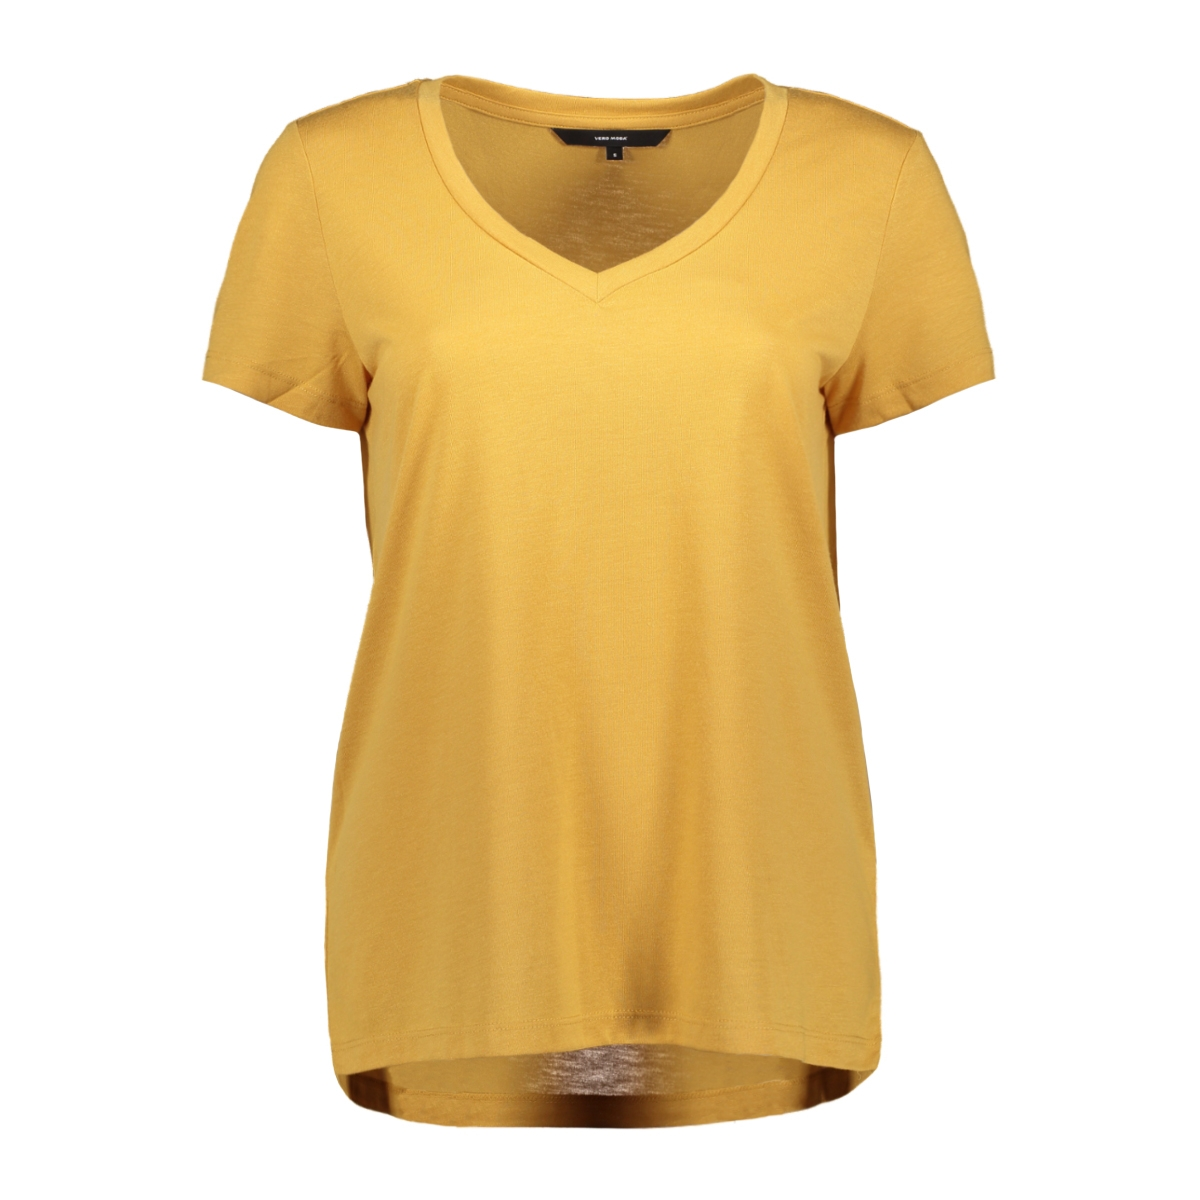 vmspicy v-neck ss top color 10191891 vero moda t-shirt amber gold